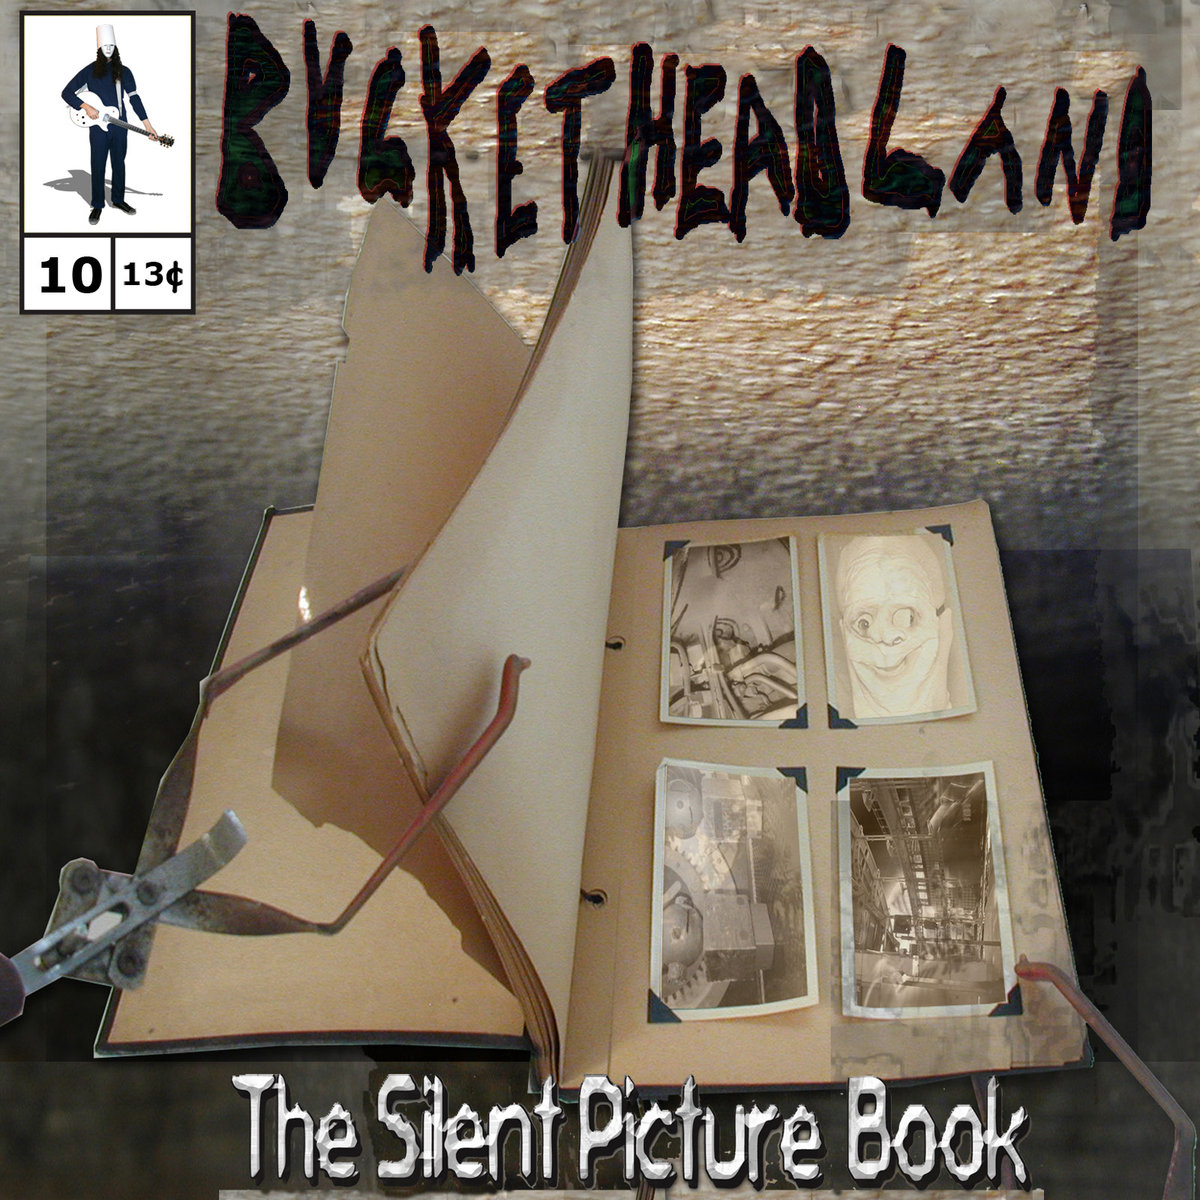 Buckethead - Pike 10: The Silent Picture Book (2012)